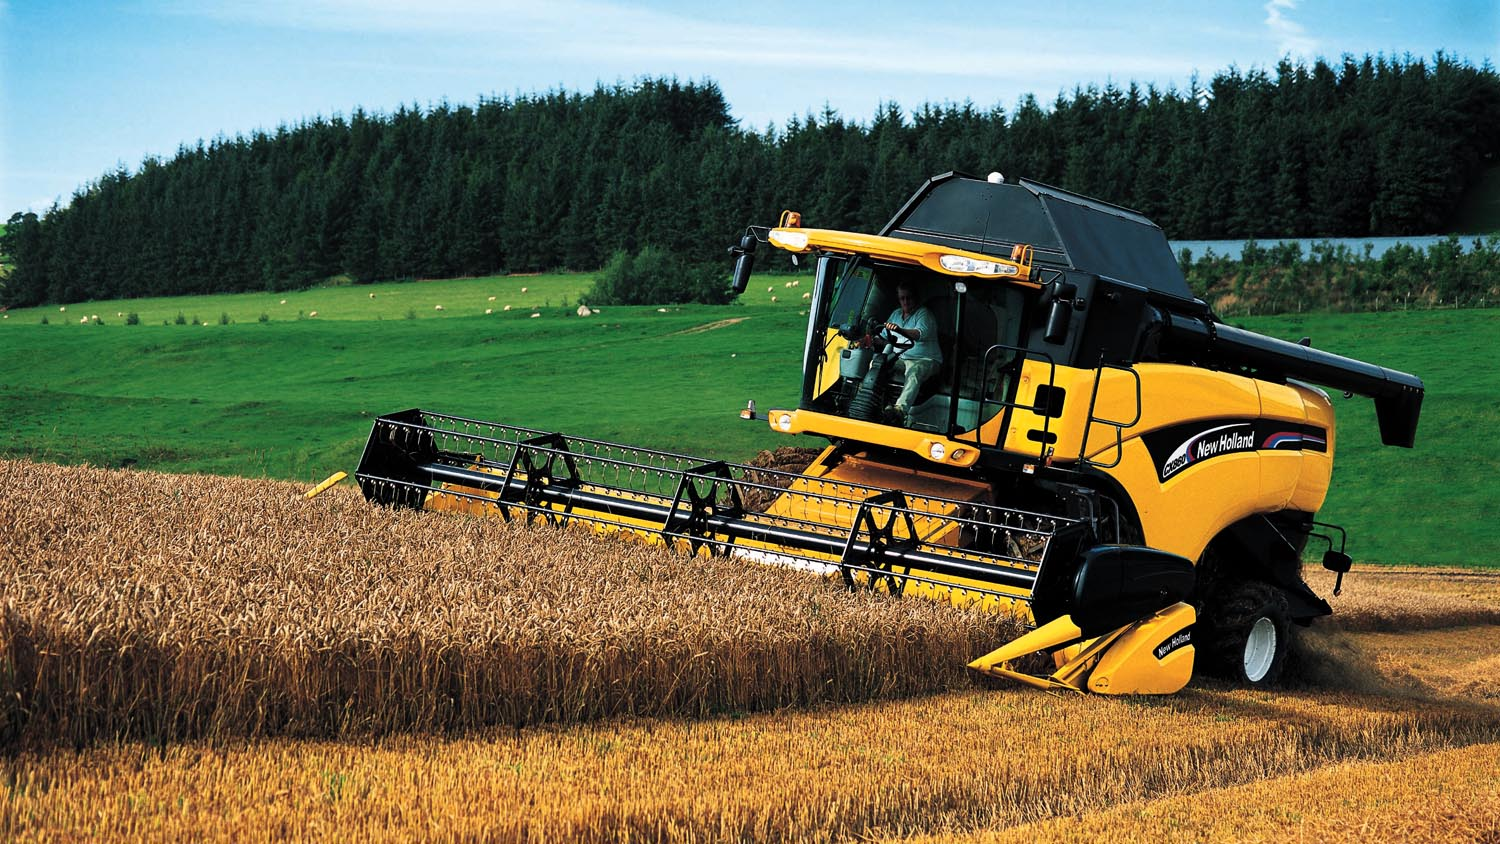 'Big data' could add £6.6 billion to global crop values